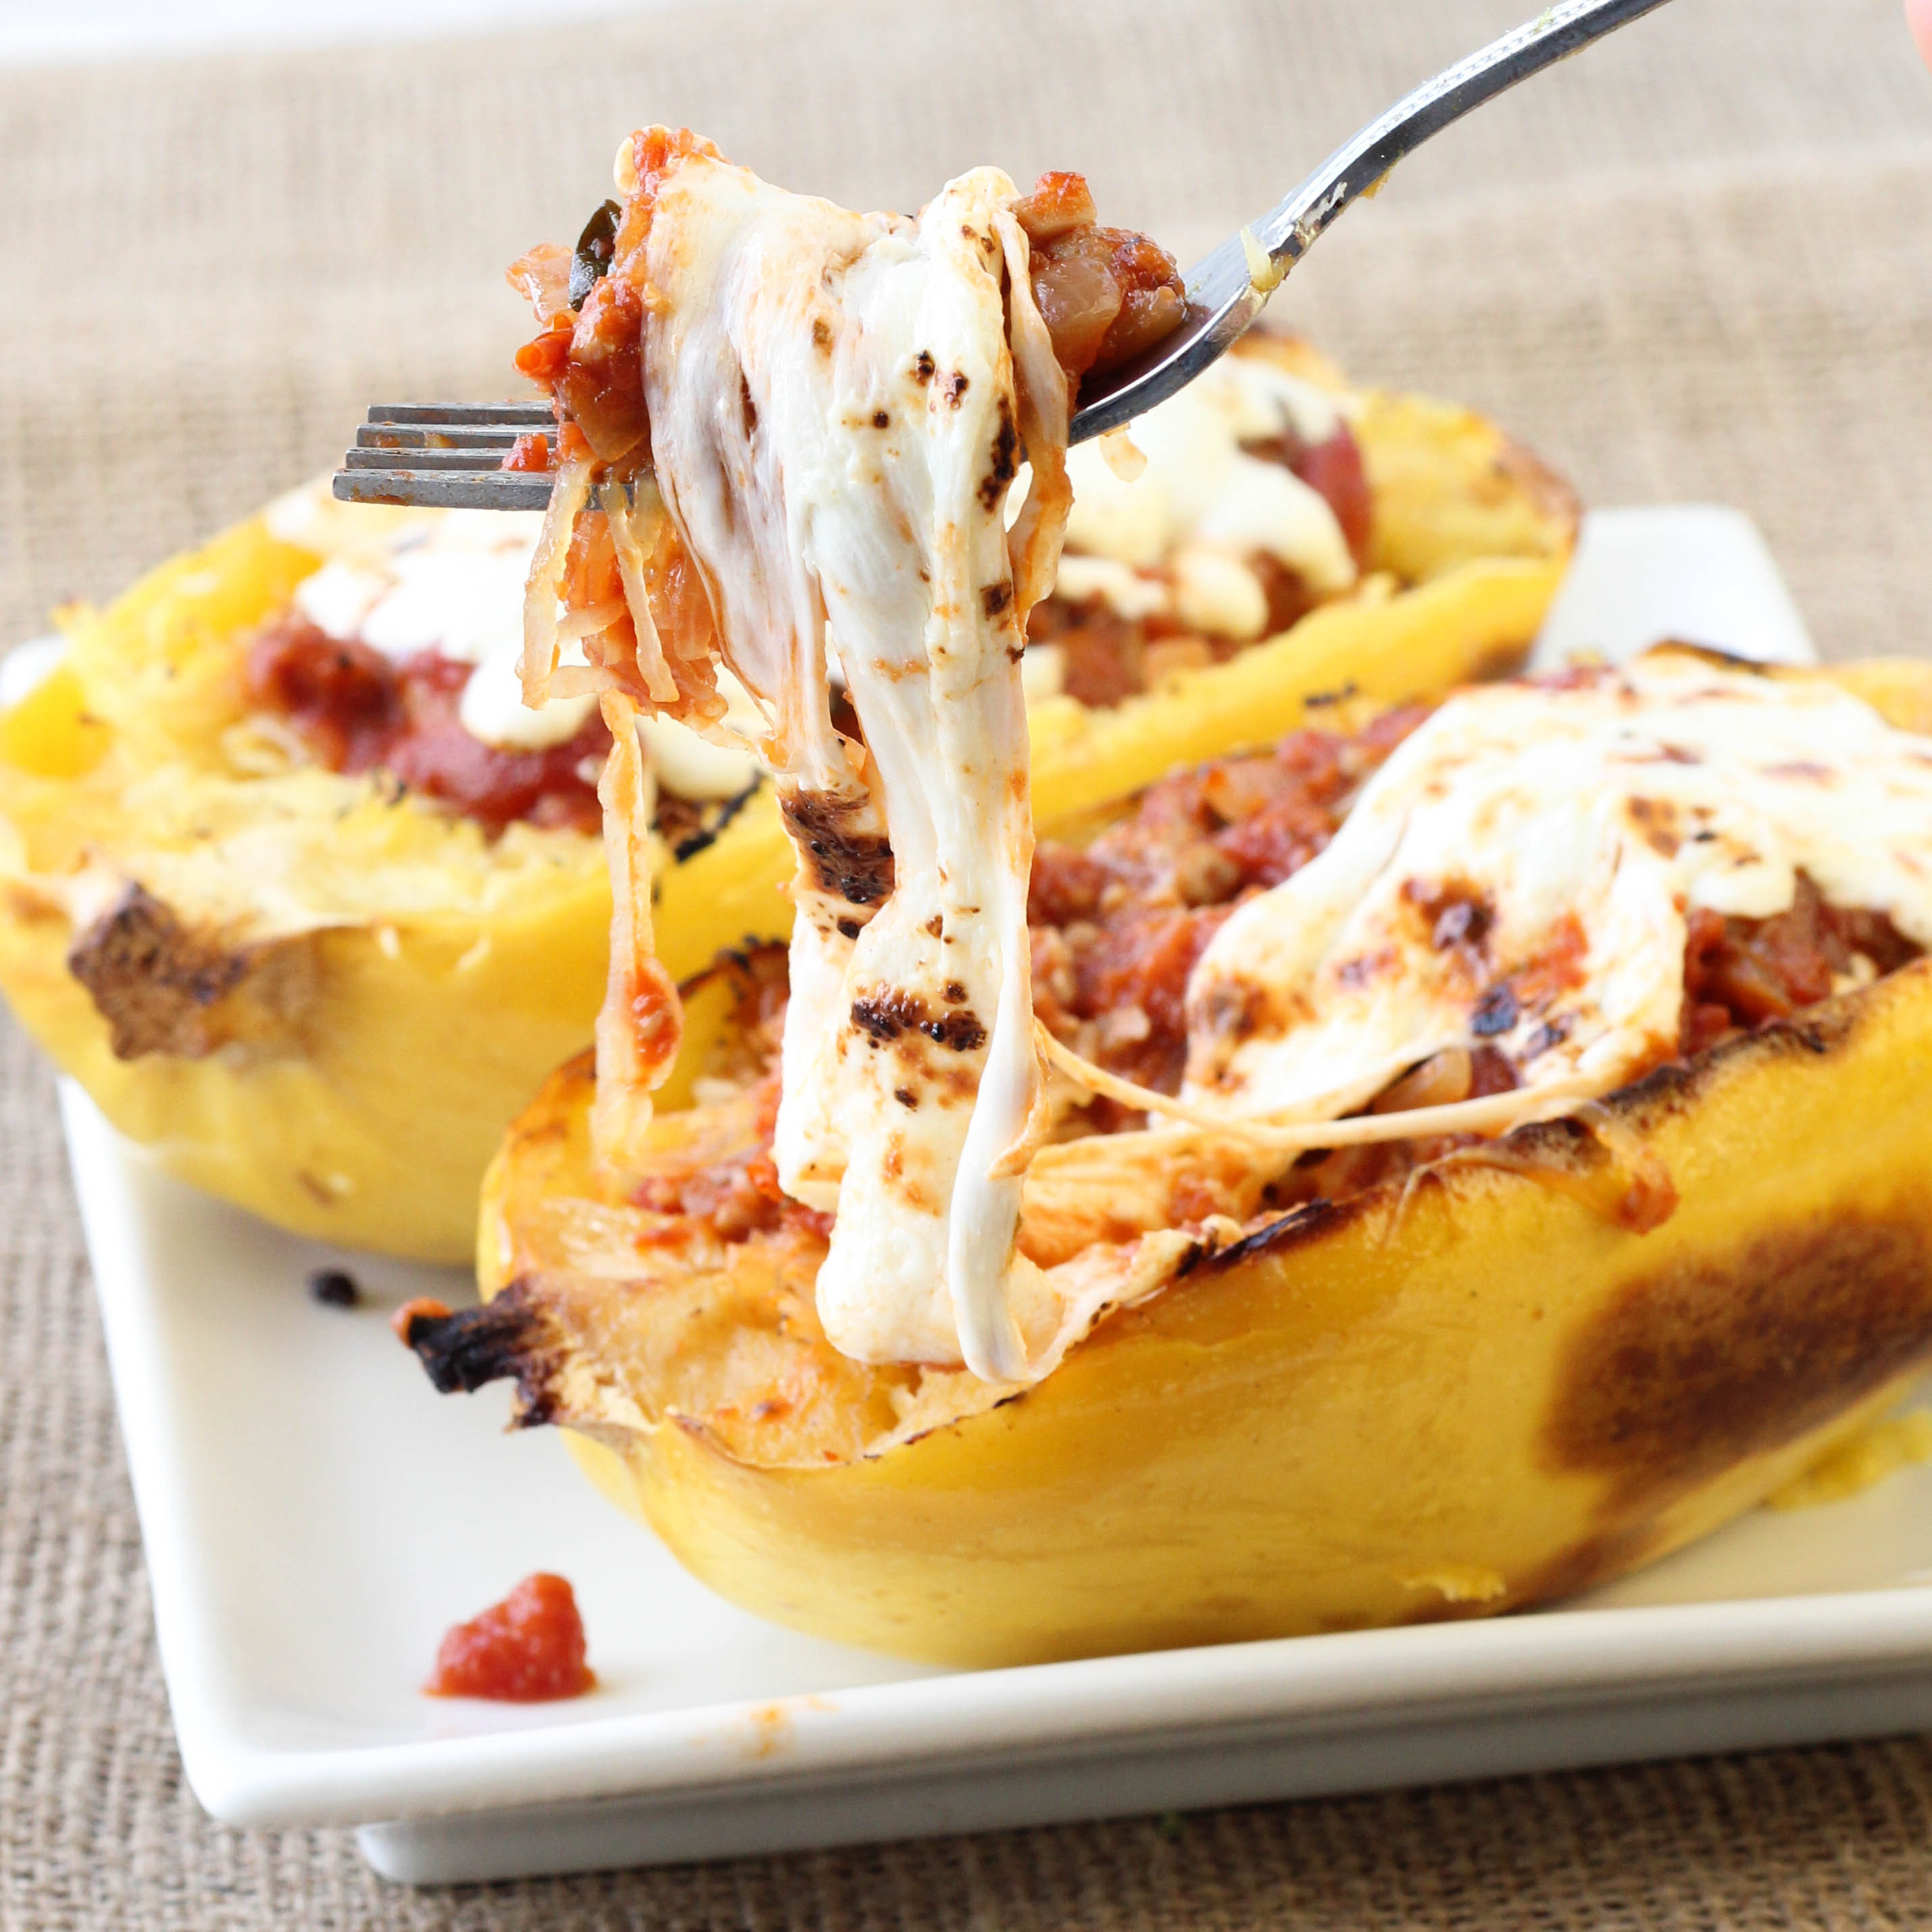 Calories In Spaghetti With Meat Sauce  CALORIES IN SPAGHETTI SQUASH WITH TURKEY MEAT SAUCE